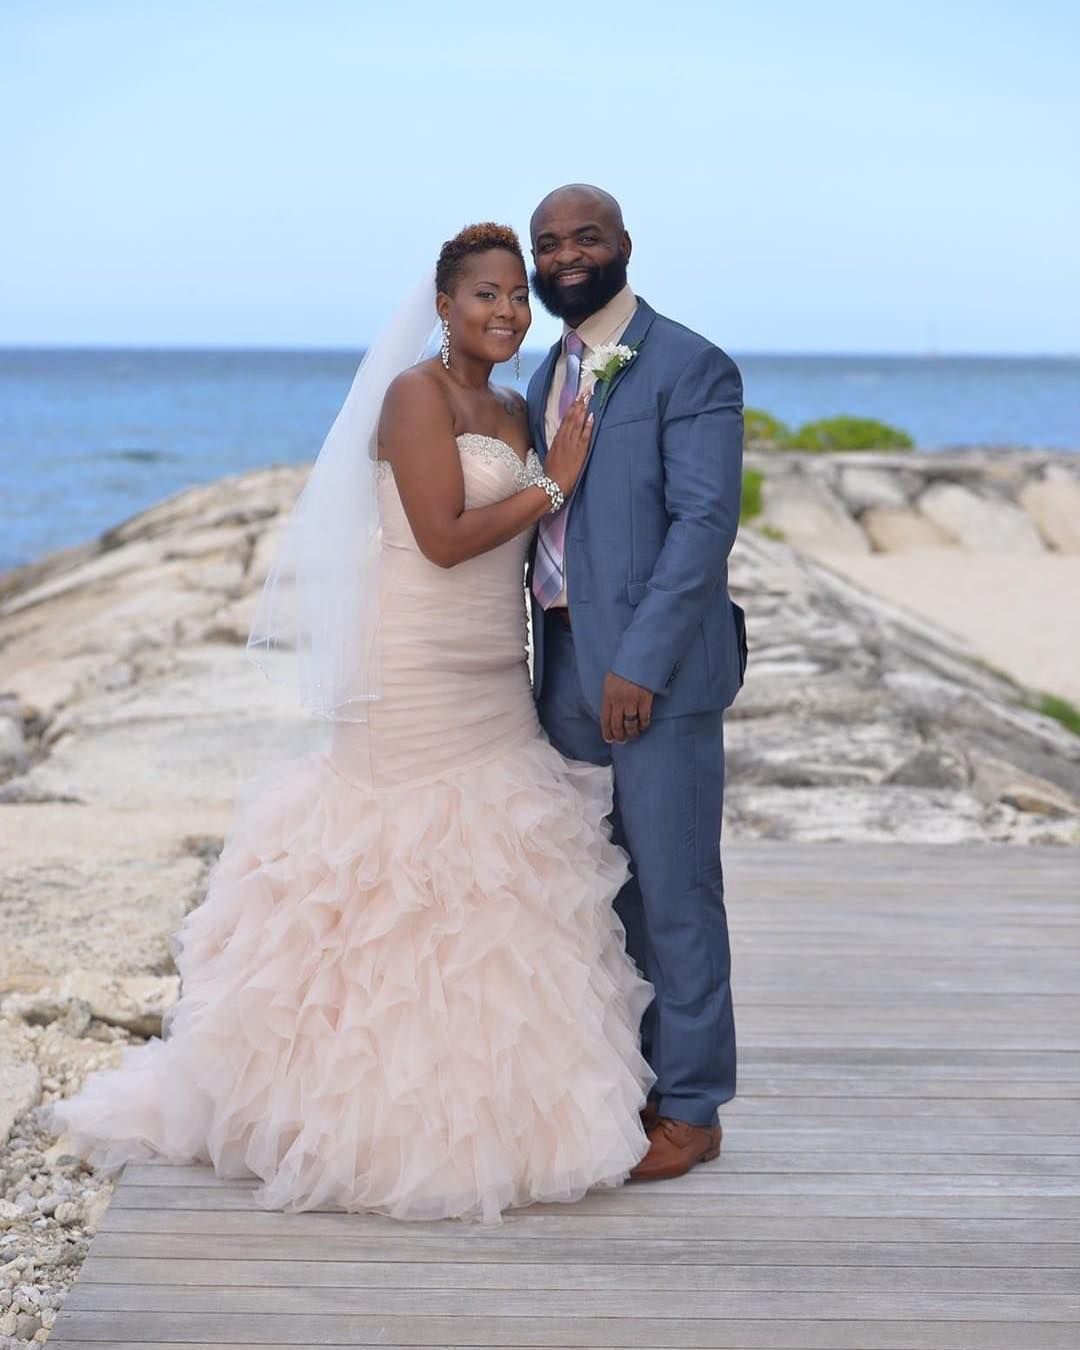 Wedding Hairstyles In Jamaica: @jus1quima Just Tied The Knot 7.7.17 In Jamaica! We Love